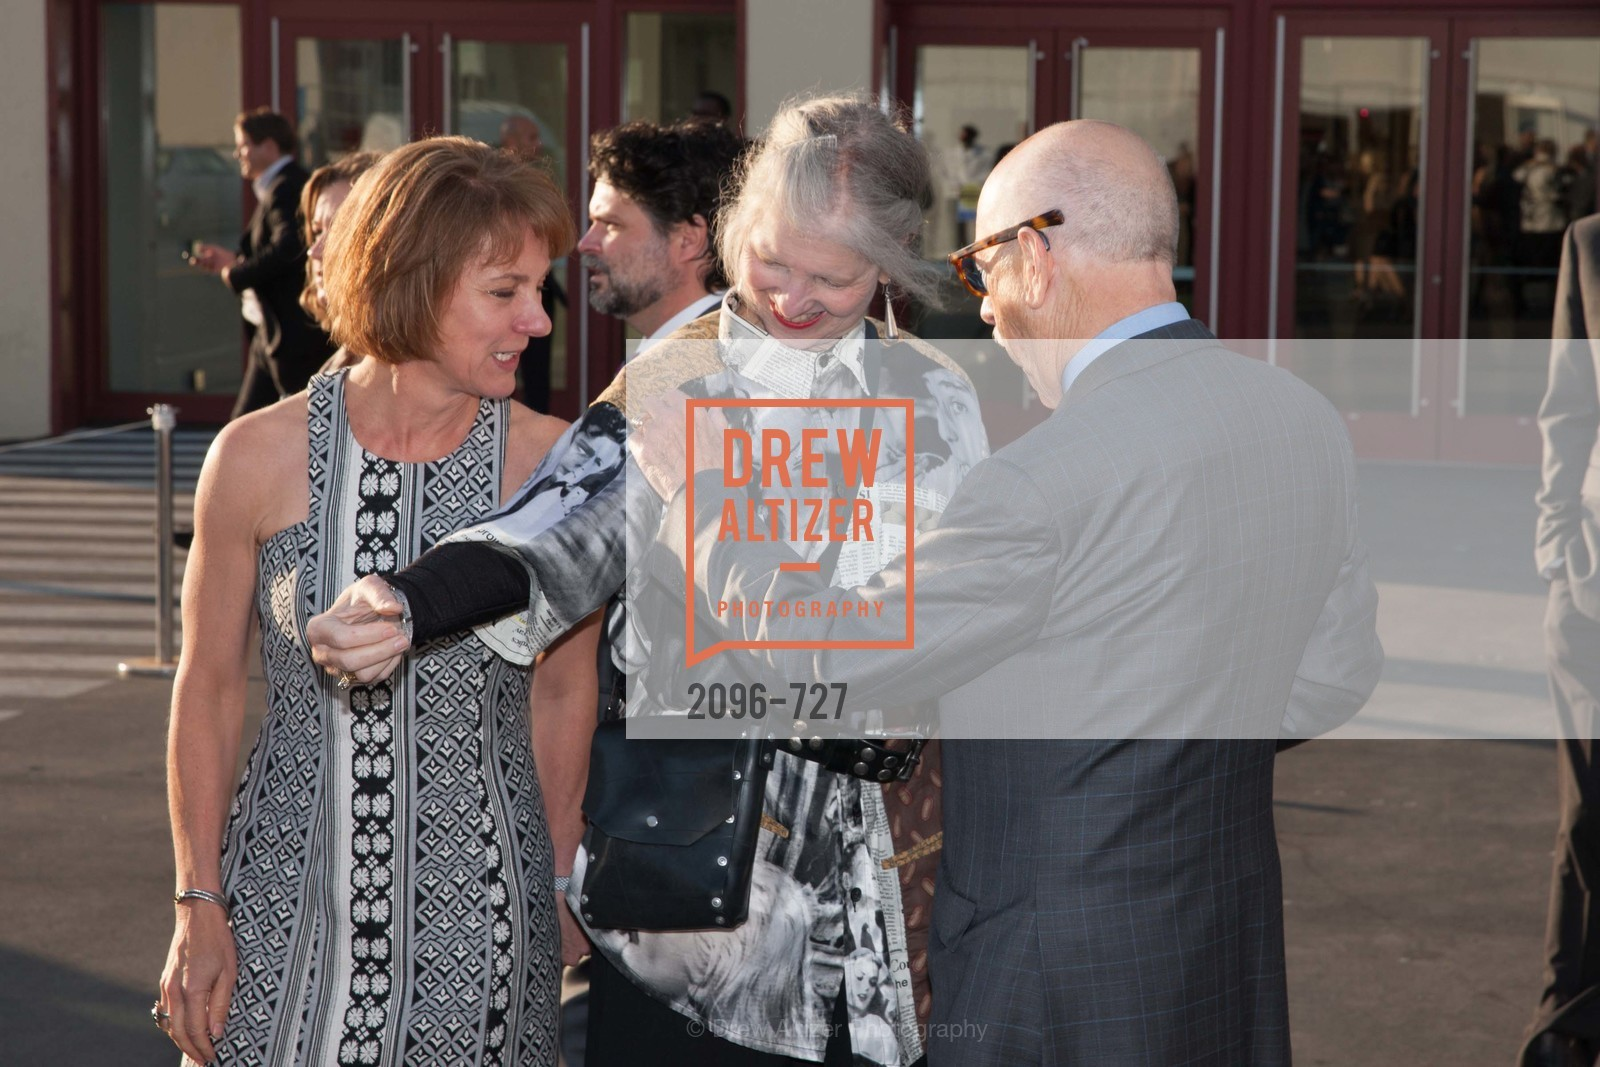 Lee Gregory, Leah Garchik, SAN FRANCISCO ART INSTITUTE Gala Honoring Art Visionary and Advocate ROSELYNE CHROMAN SWIG, US, May 13th, 2015,Drew Altizer, Drew Altizer Photography, full-service agency, private events, San Francisco photographer, photographer california